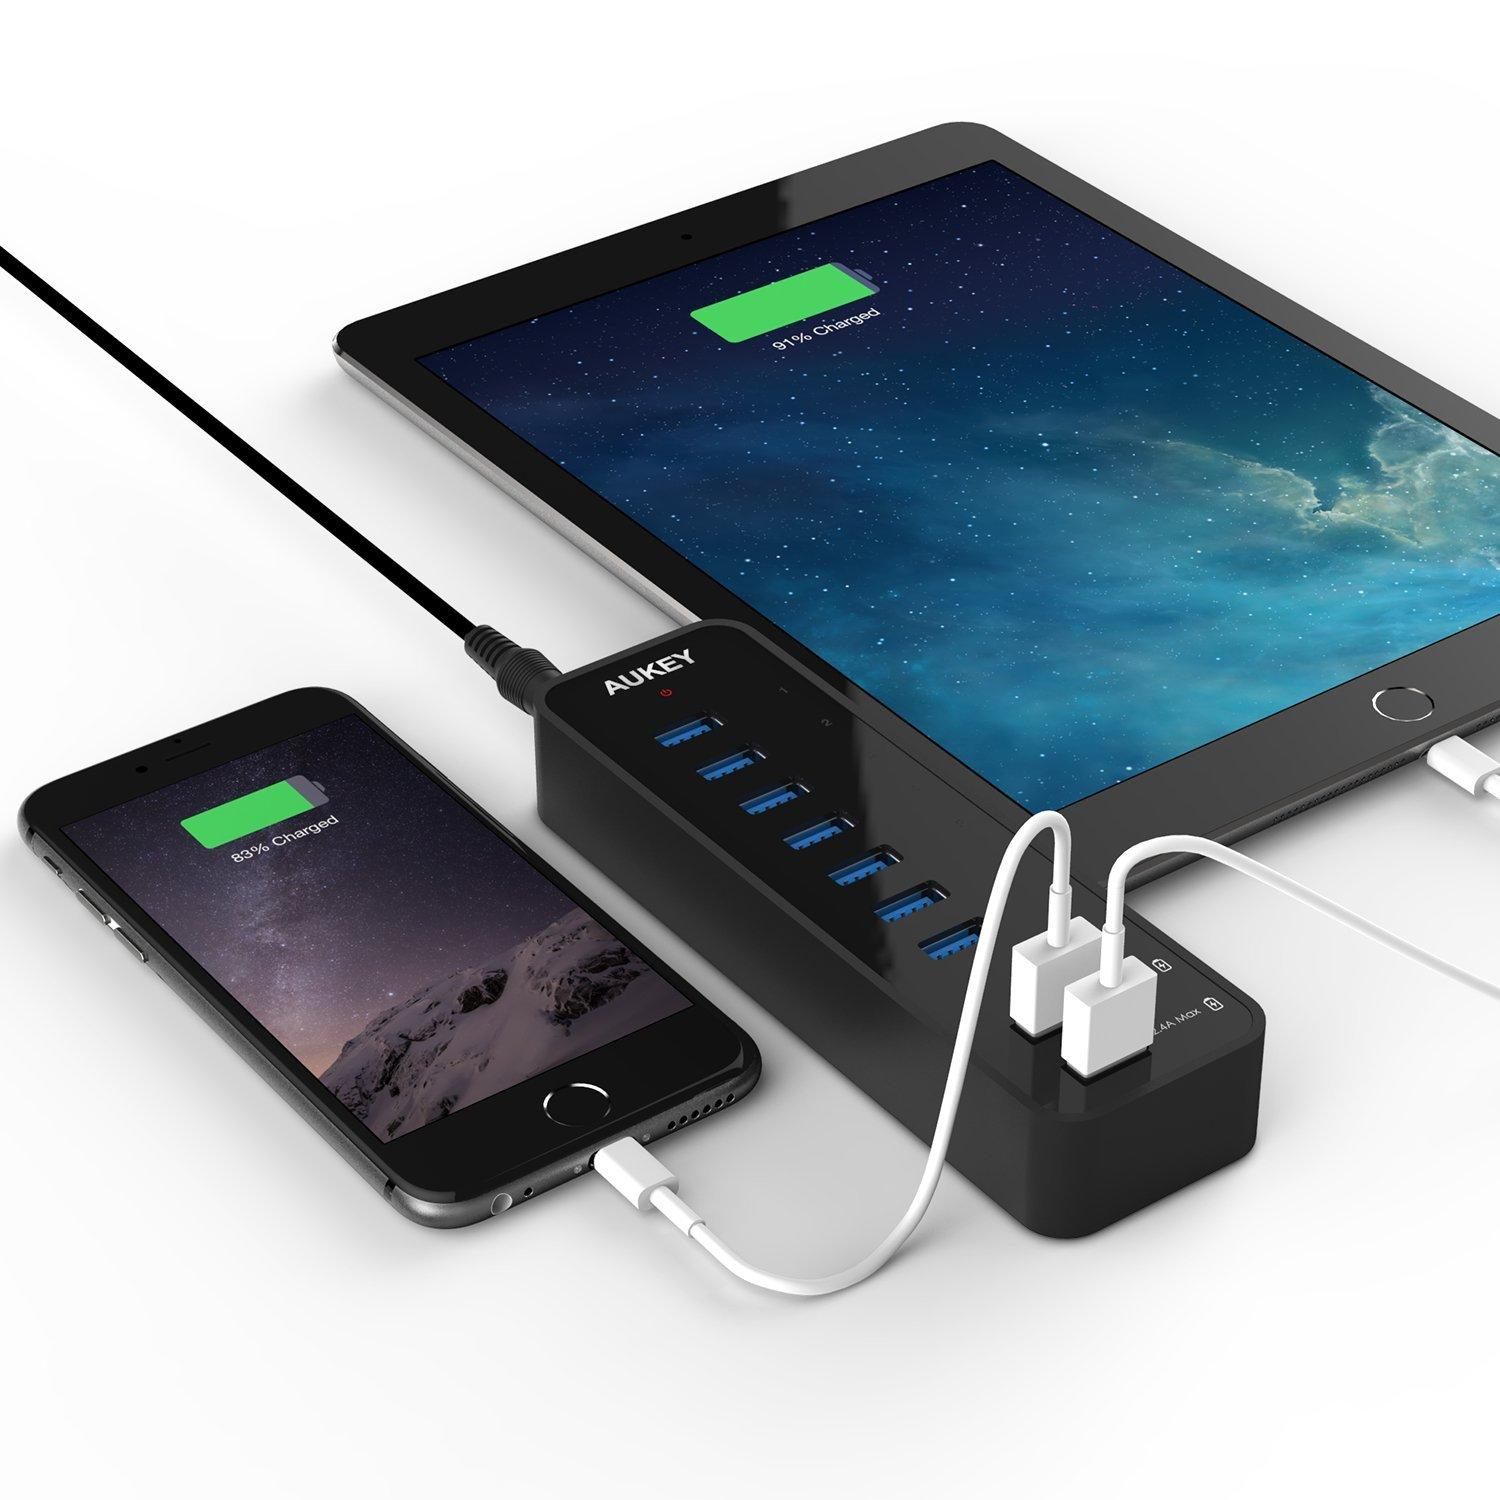 Aukey 7-Port USB 3.0 Hub with 2 Smart Charging Ports (Up to 2.4A) with 12V 4A Power Adapter and USB 3.0 Cable